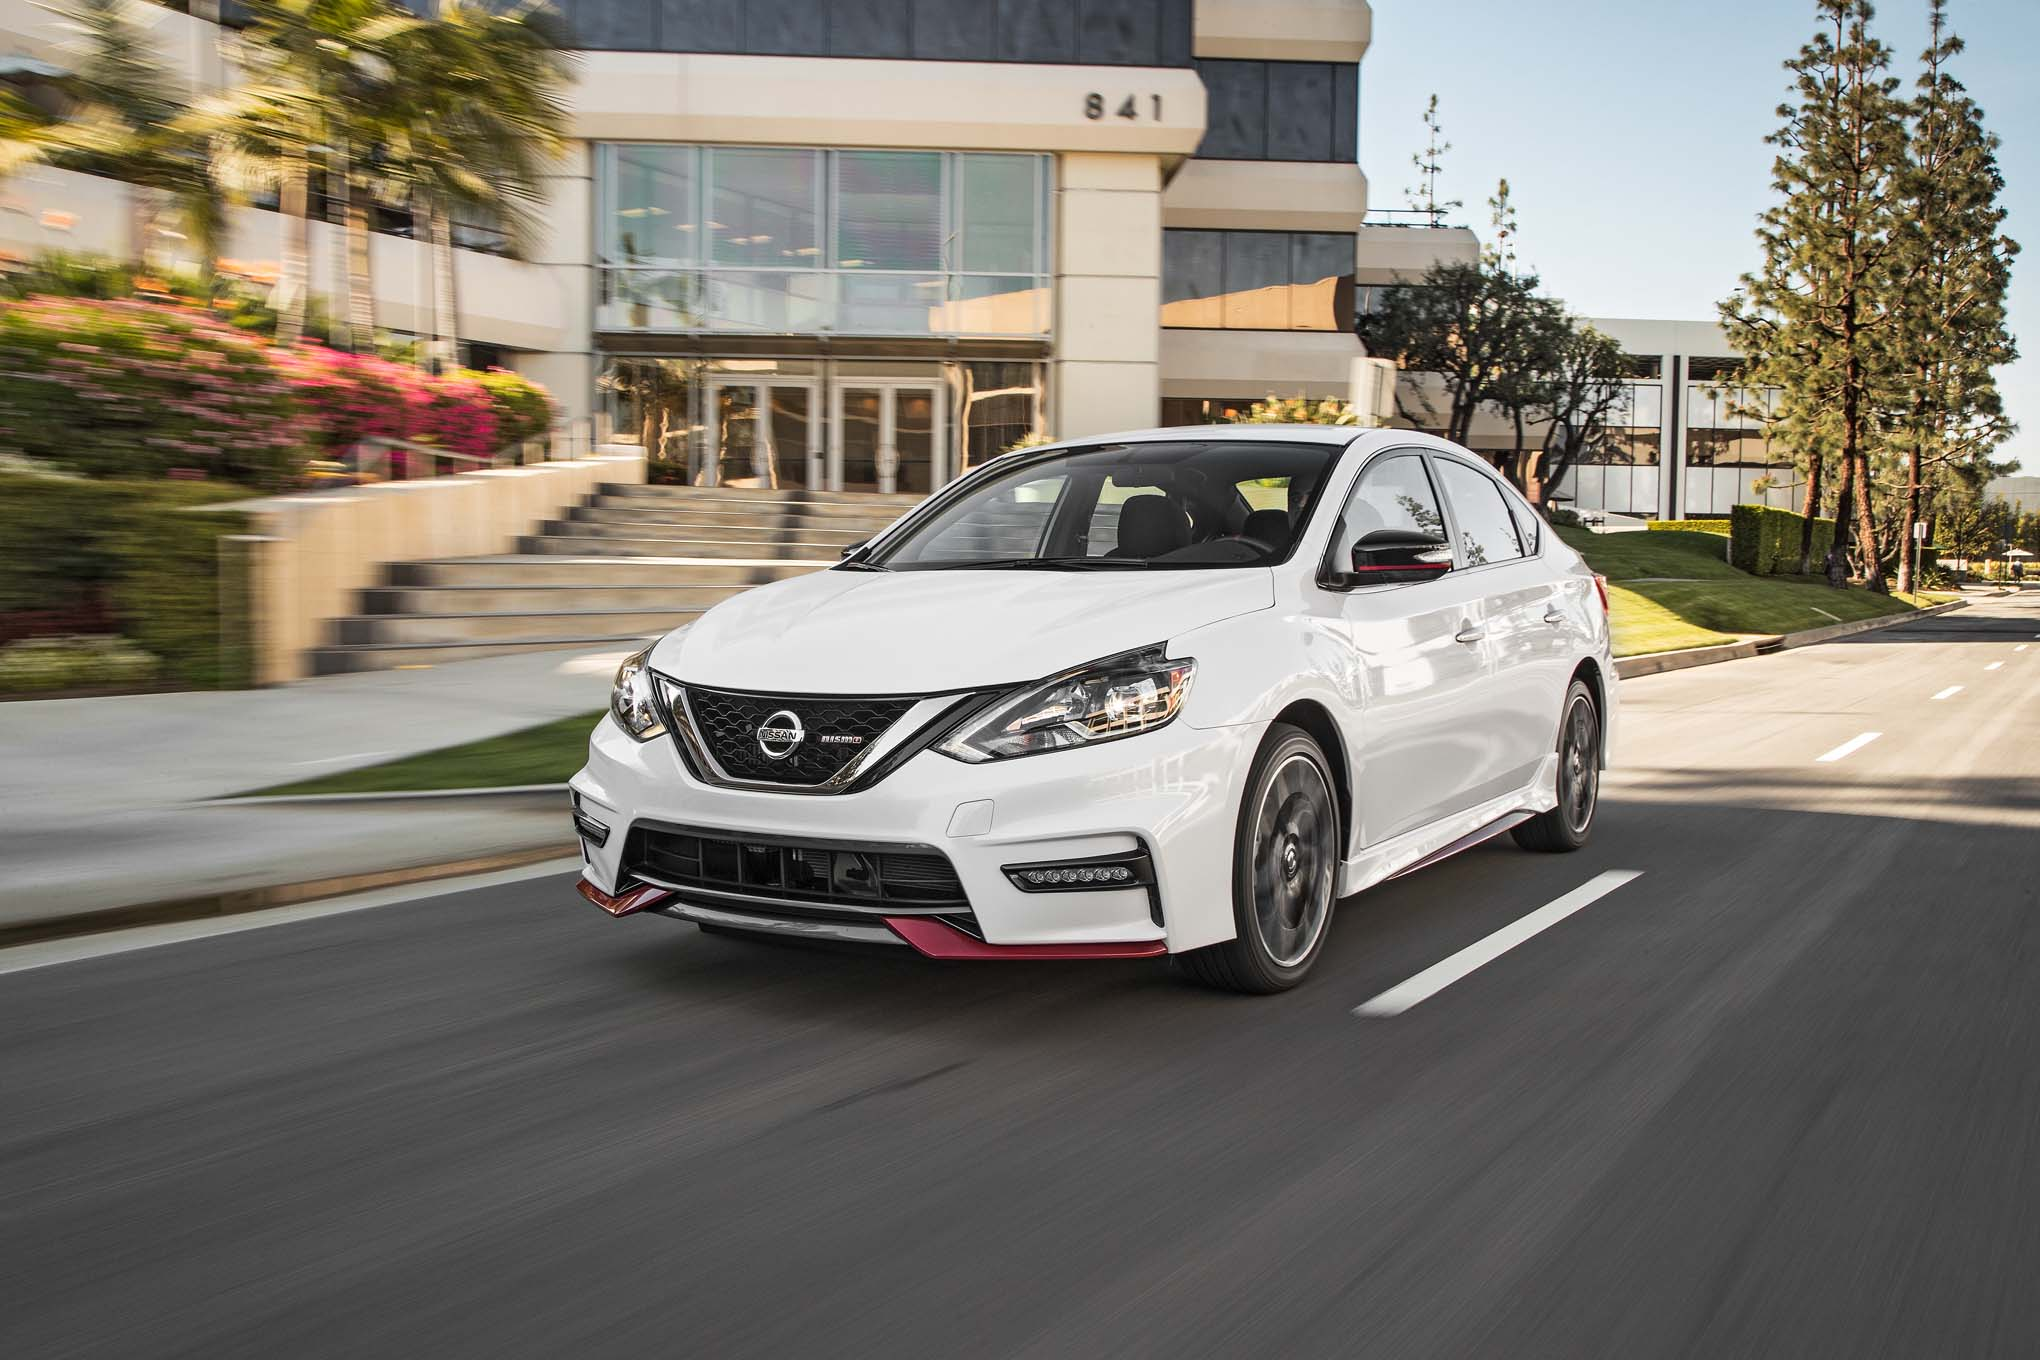 2017 Nissan Sentra NISMO Front Three Quarter In Motion